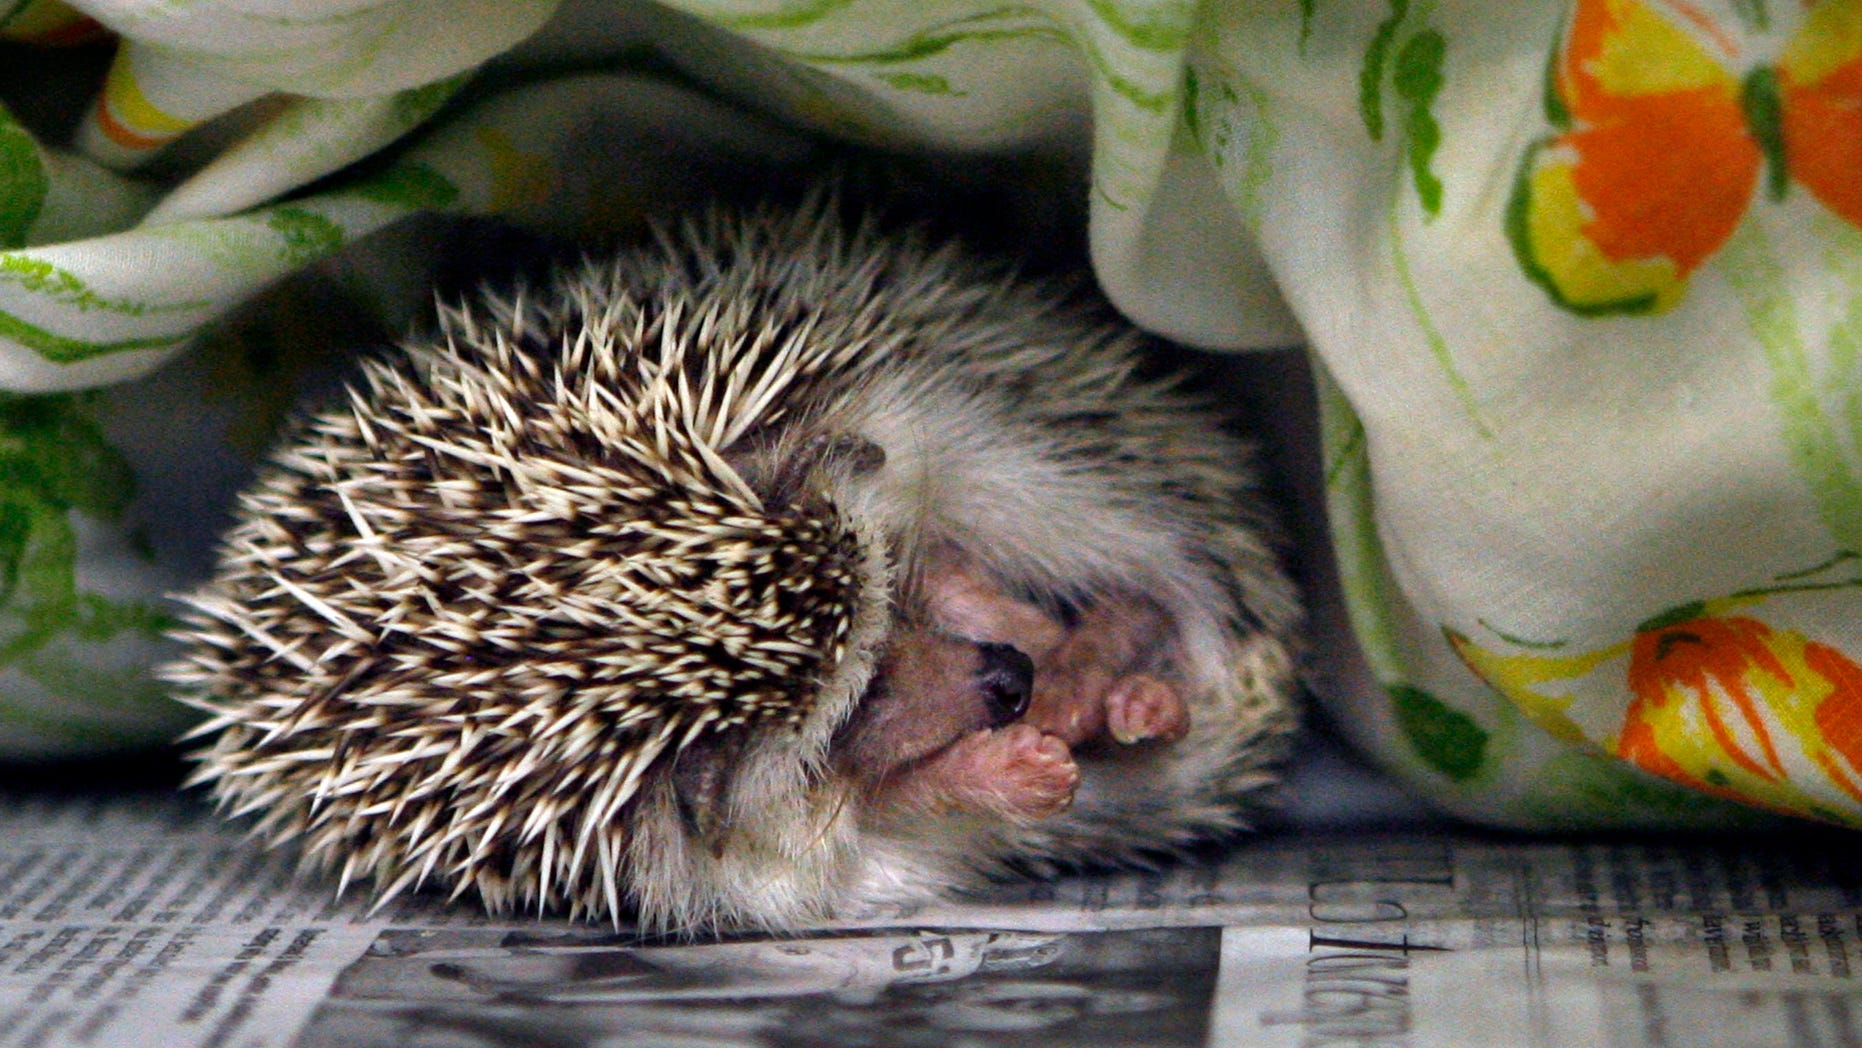 A hedgehog sleeps at the SPCA in Largo, Fla., in a Monday, Jan. 7, 2013 file photo.